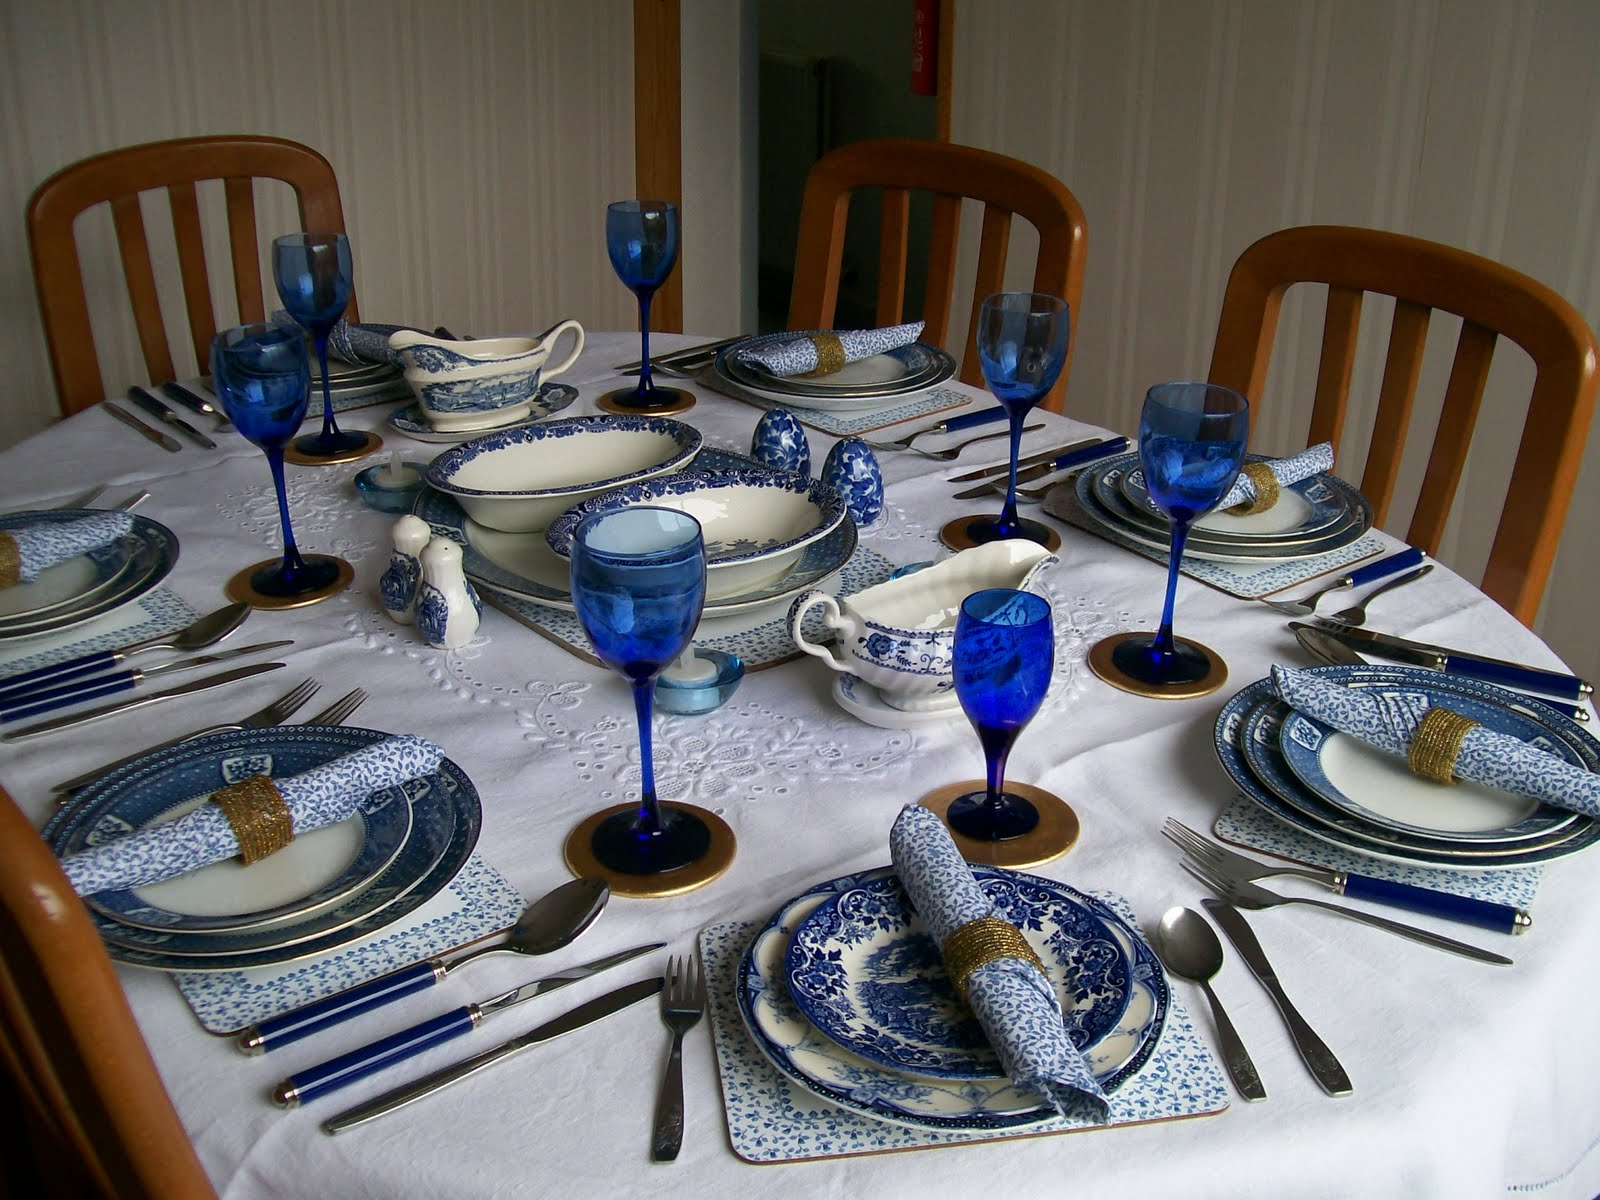 Dining Table Set Up Ideas Thank You For Inviting Us To Dinner Please Be Aware Of